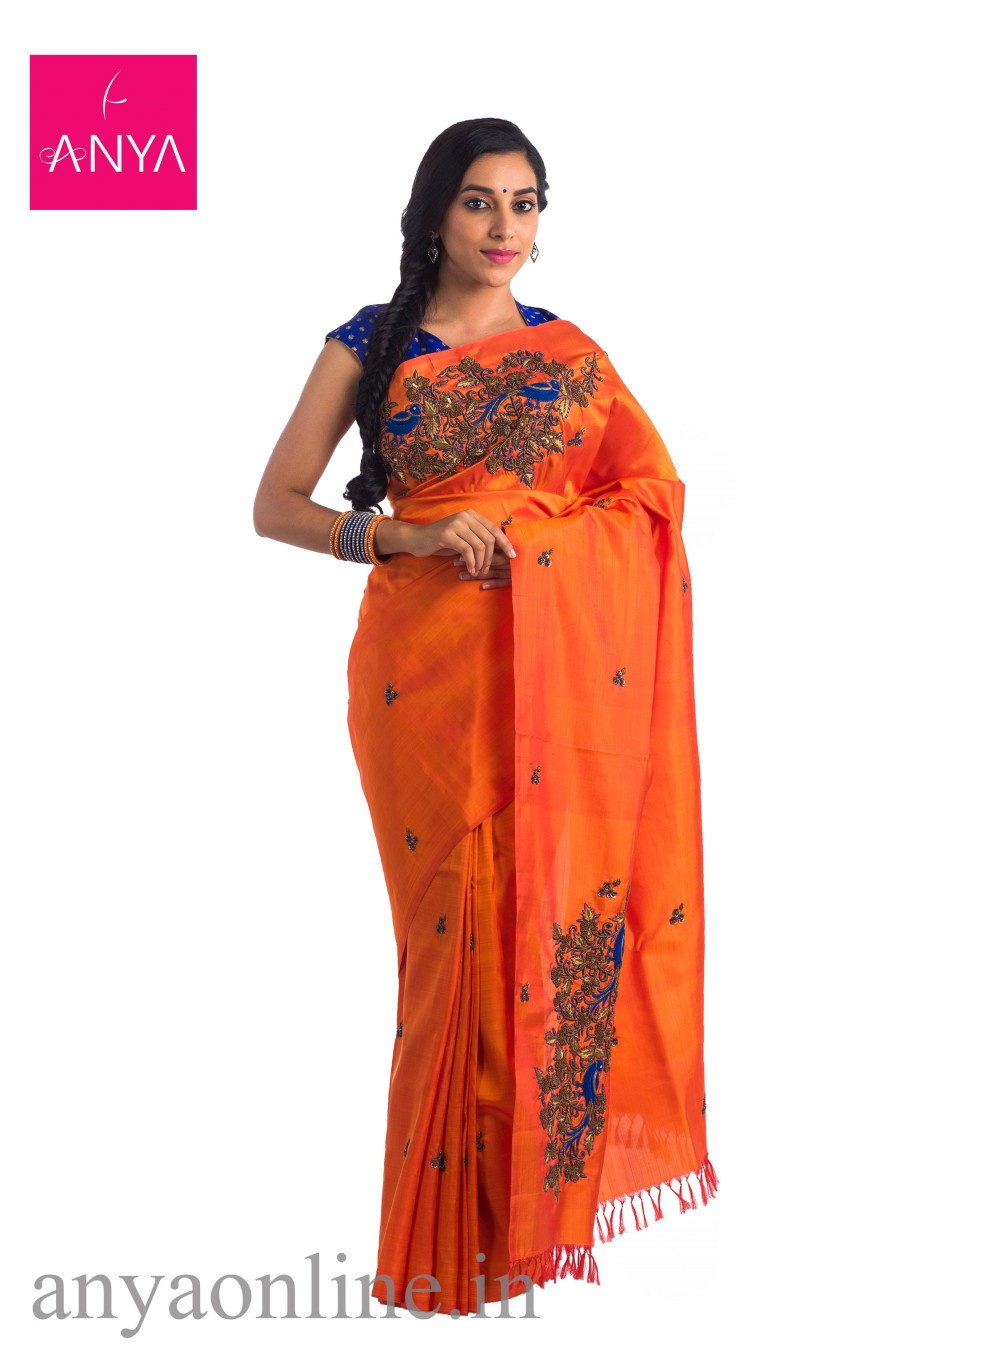 0869306f69 271f7d7d7d81c49a8e171d24ac7af7a1 Orange kanchipuram silk saree with MS Blue  embroidery-1000x1362